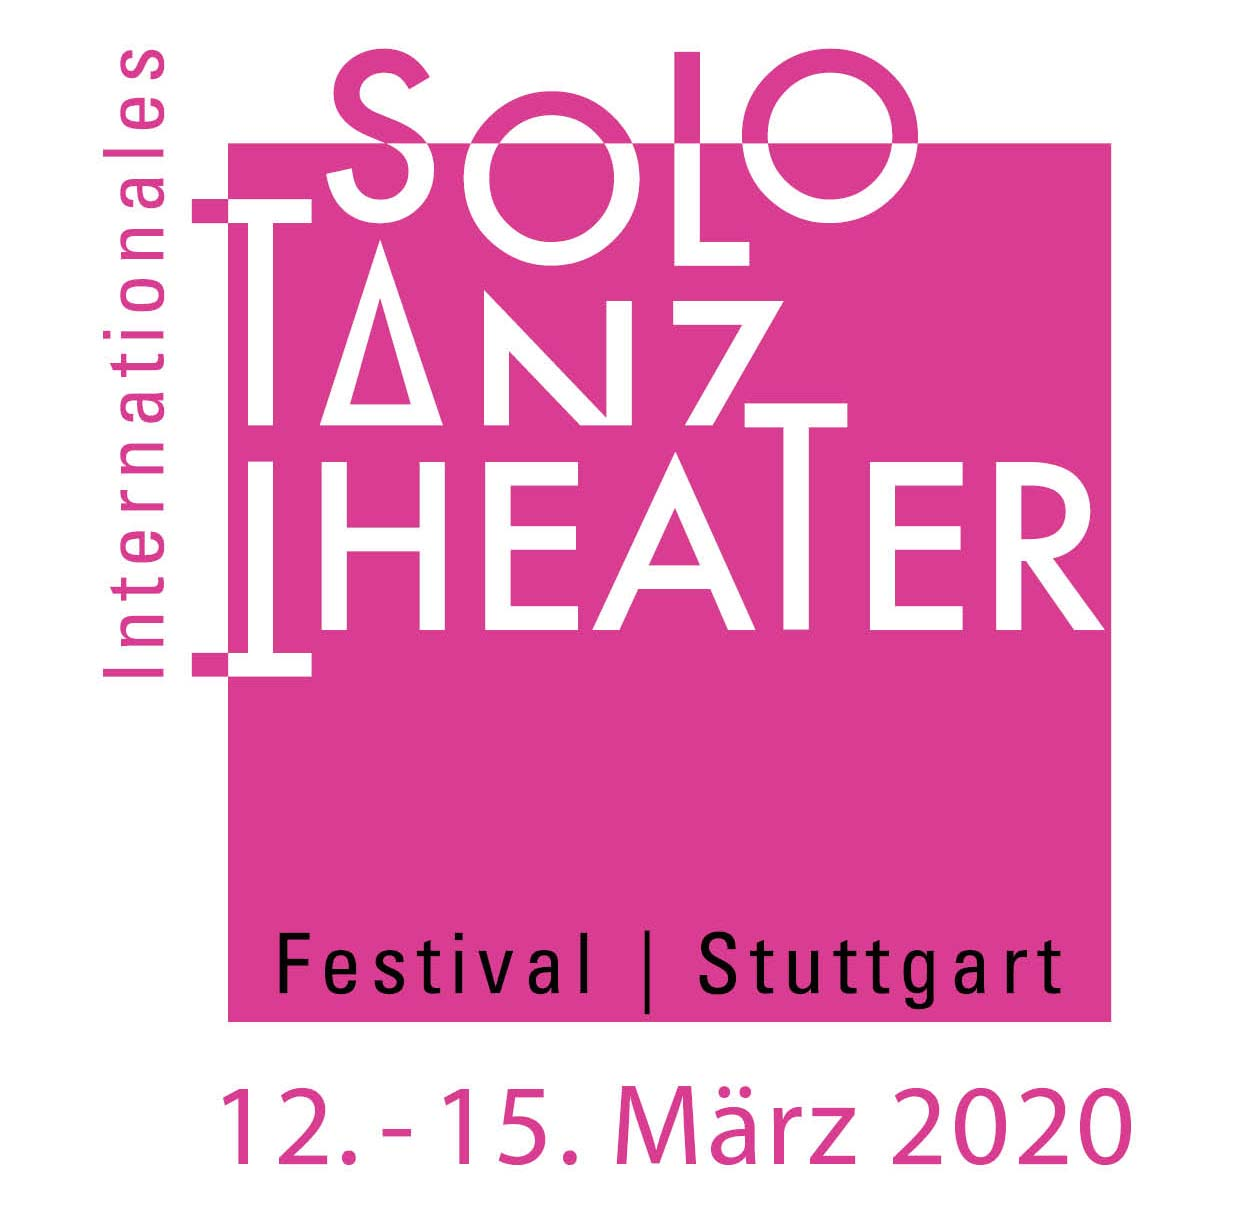 Solo-Tanz-Theater